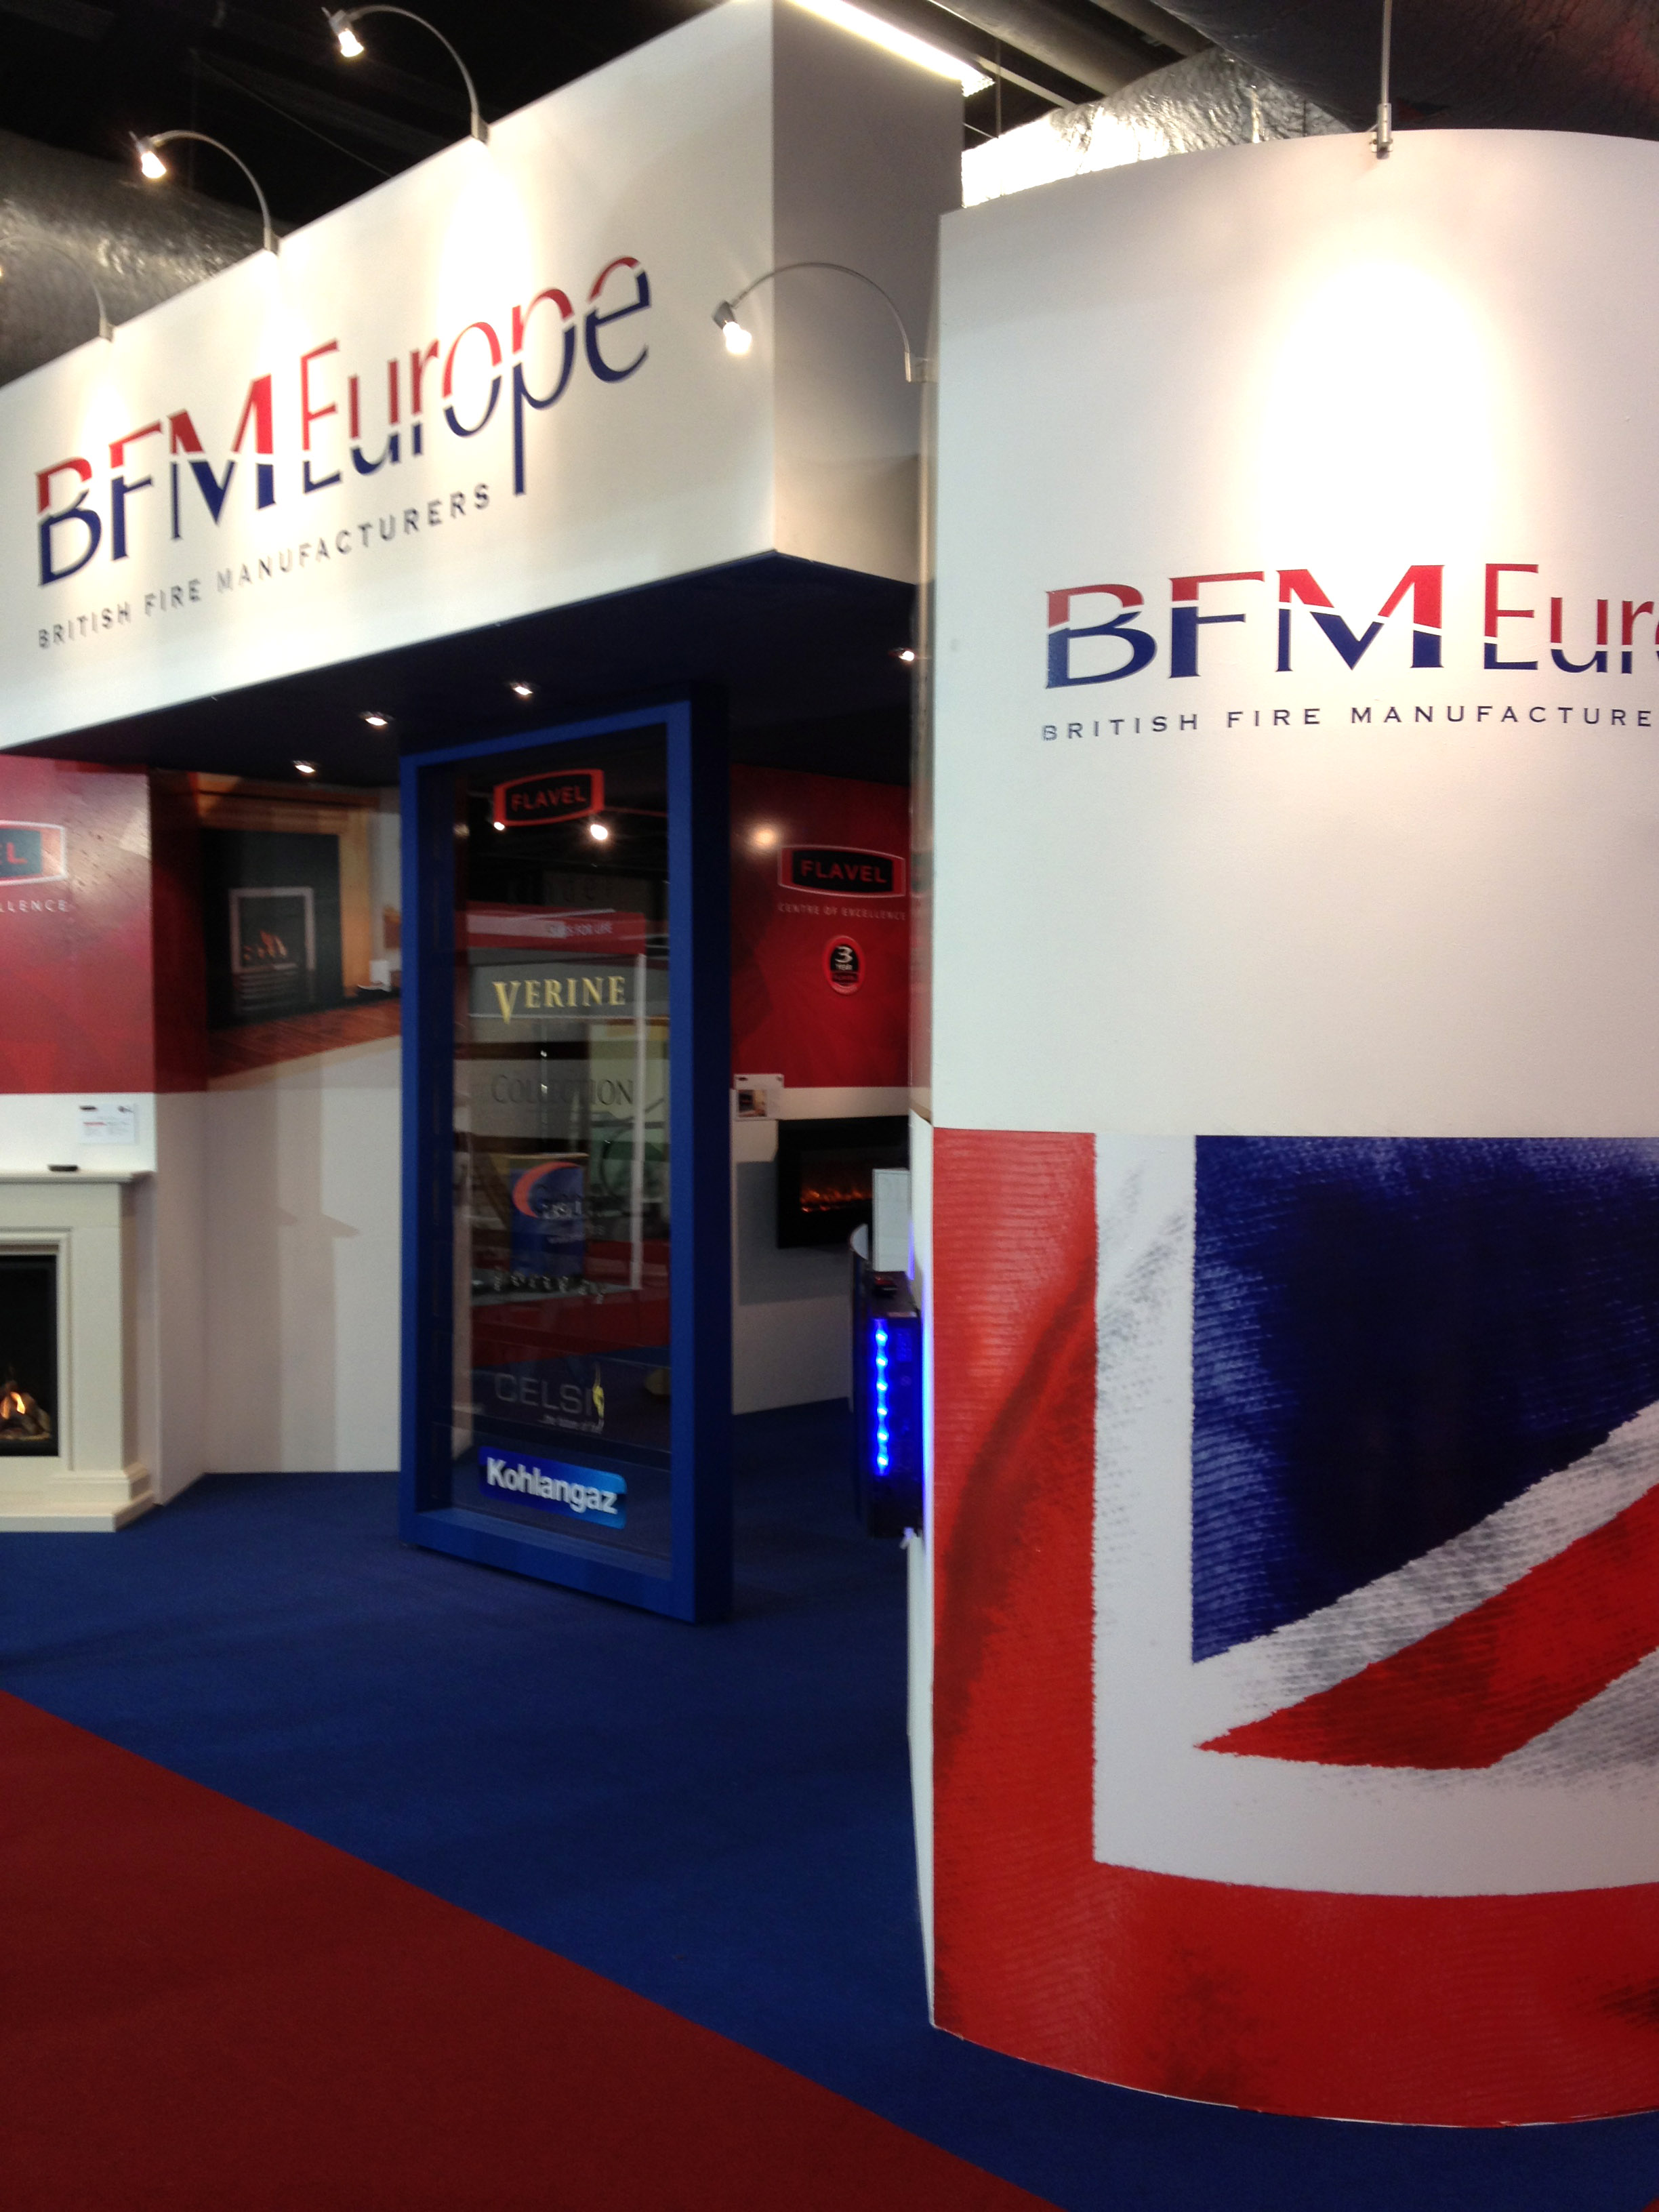 Exhibition Stand Europe : Bfm europe exhibition stand by ad bell u2013 ad bell sign systems